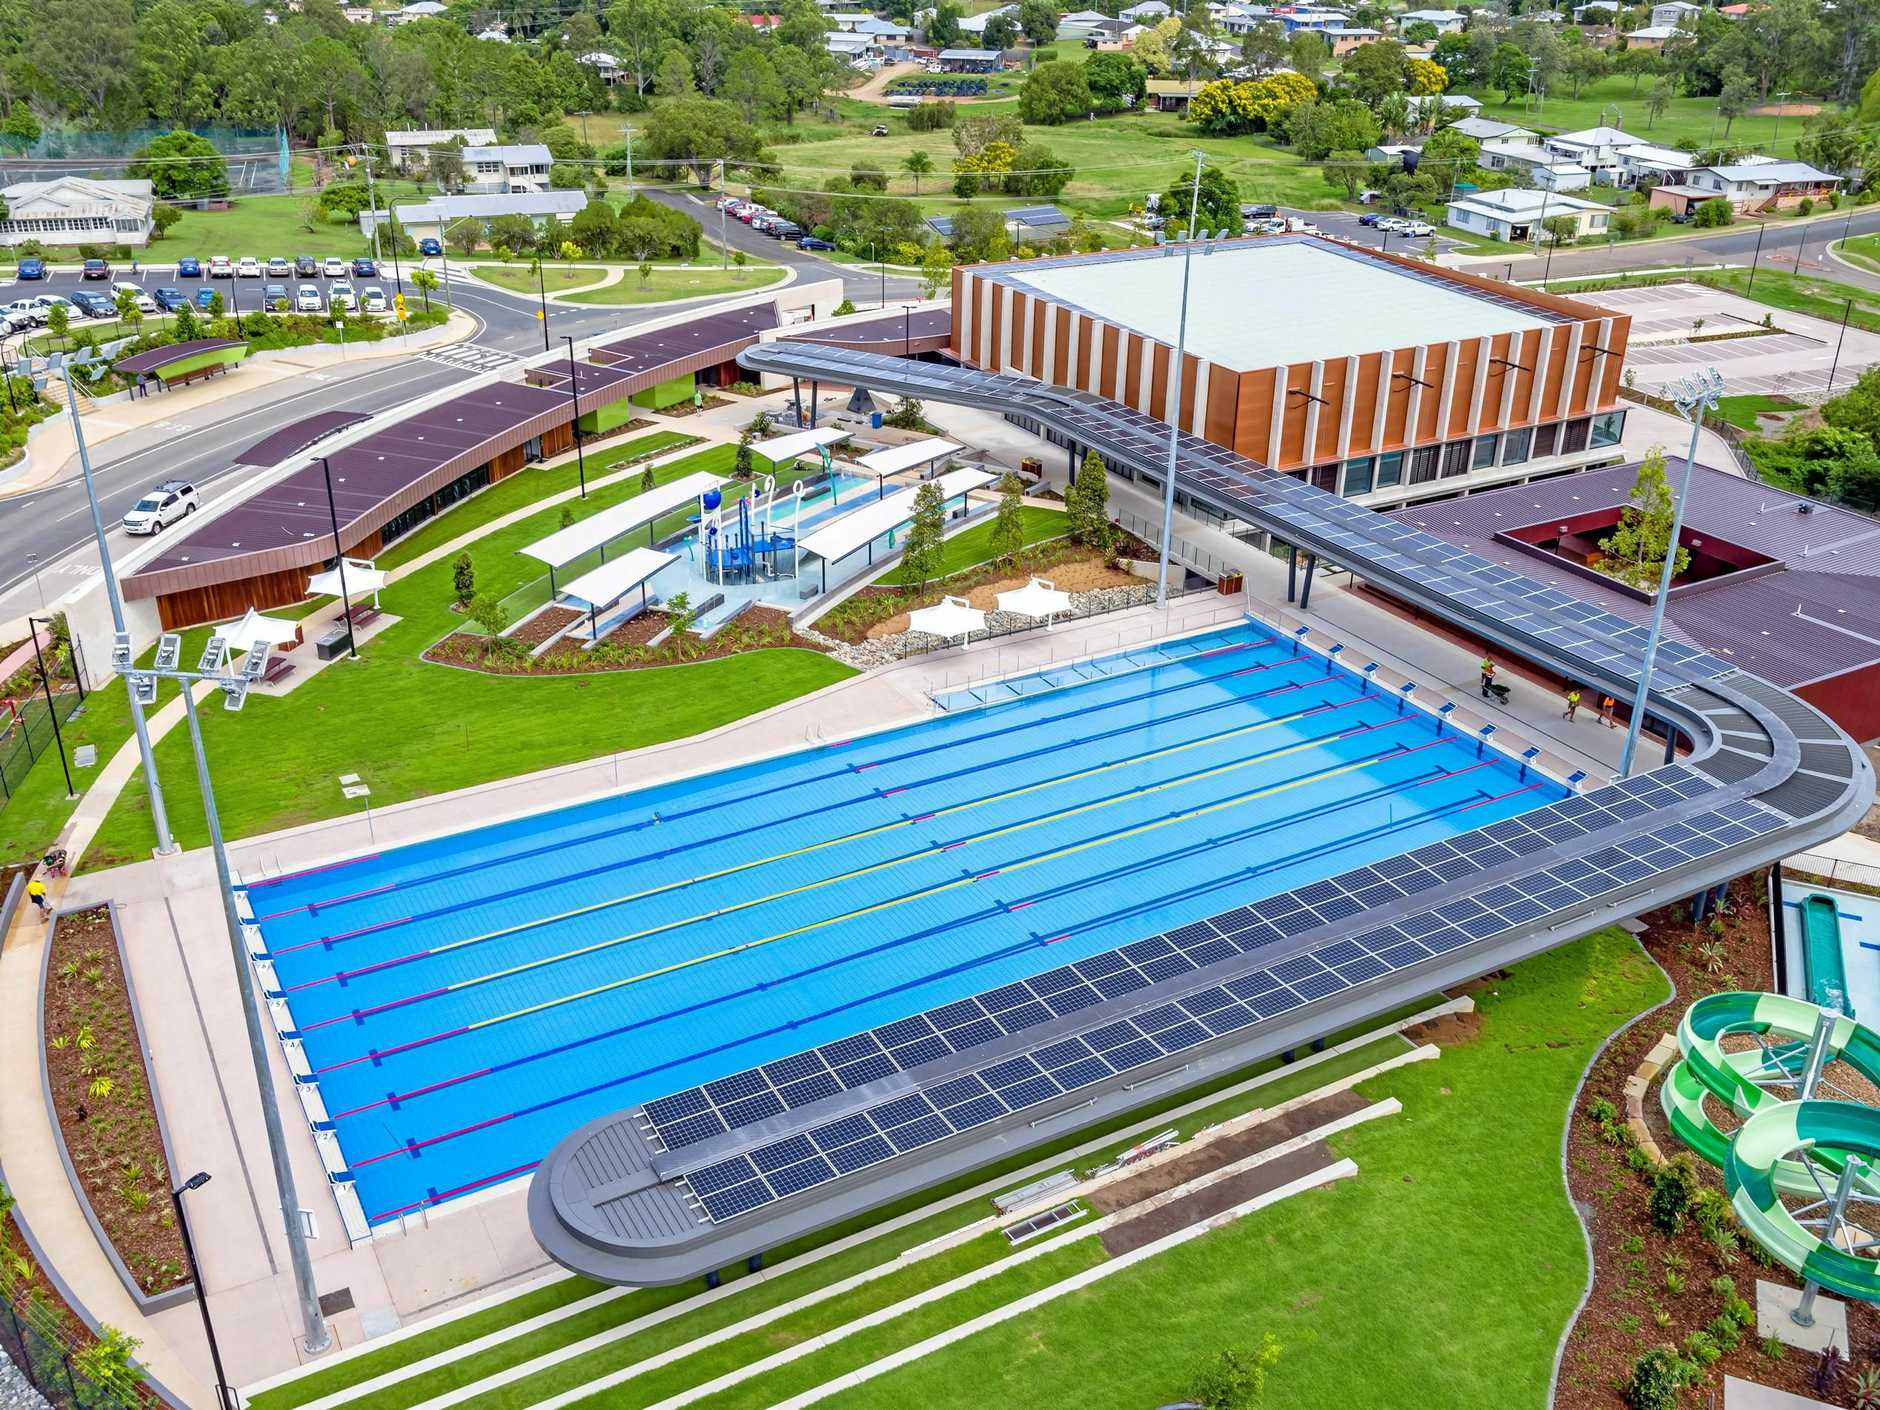 The Gympie aquatic centre.